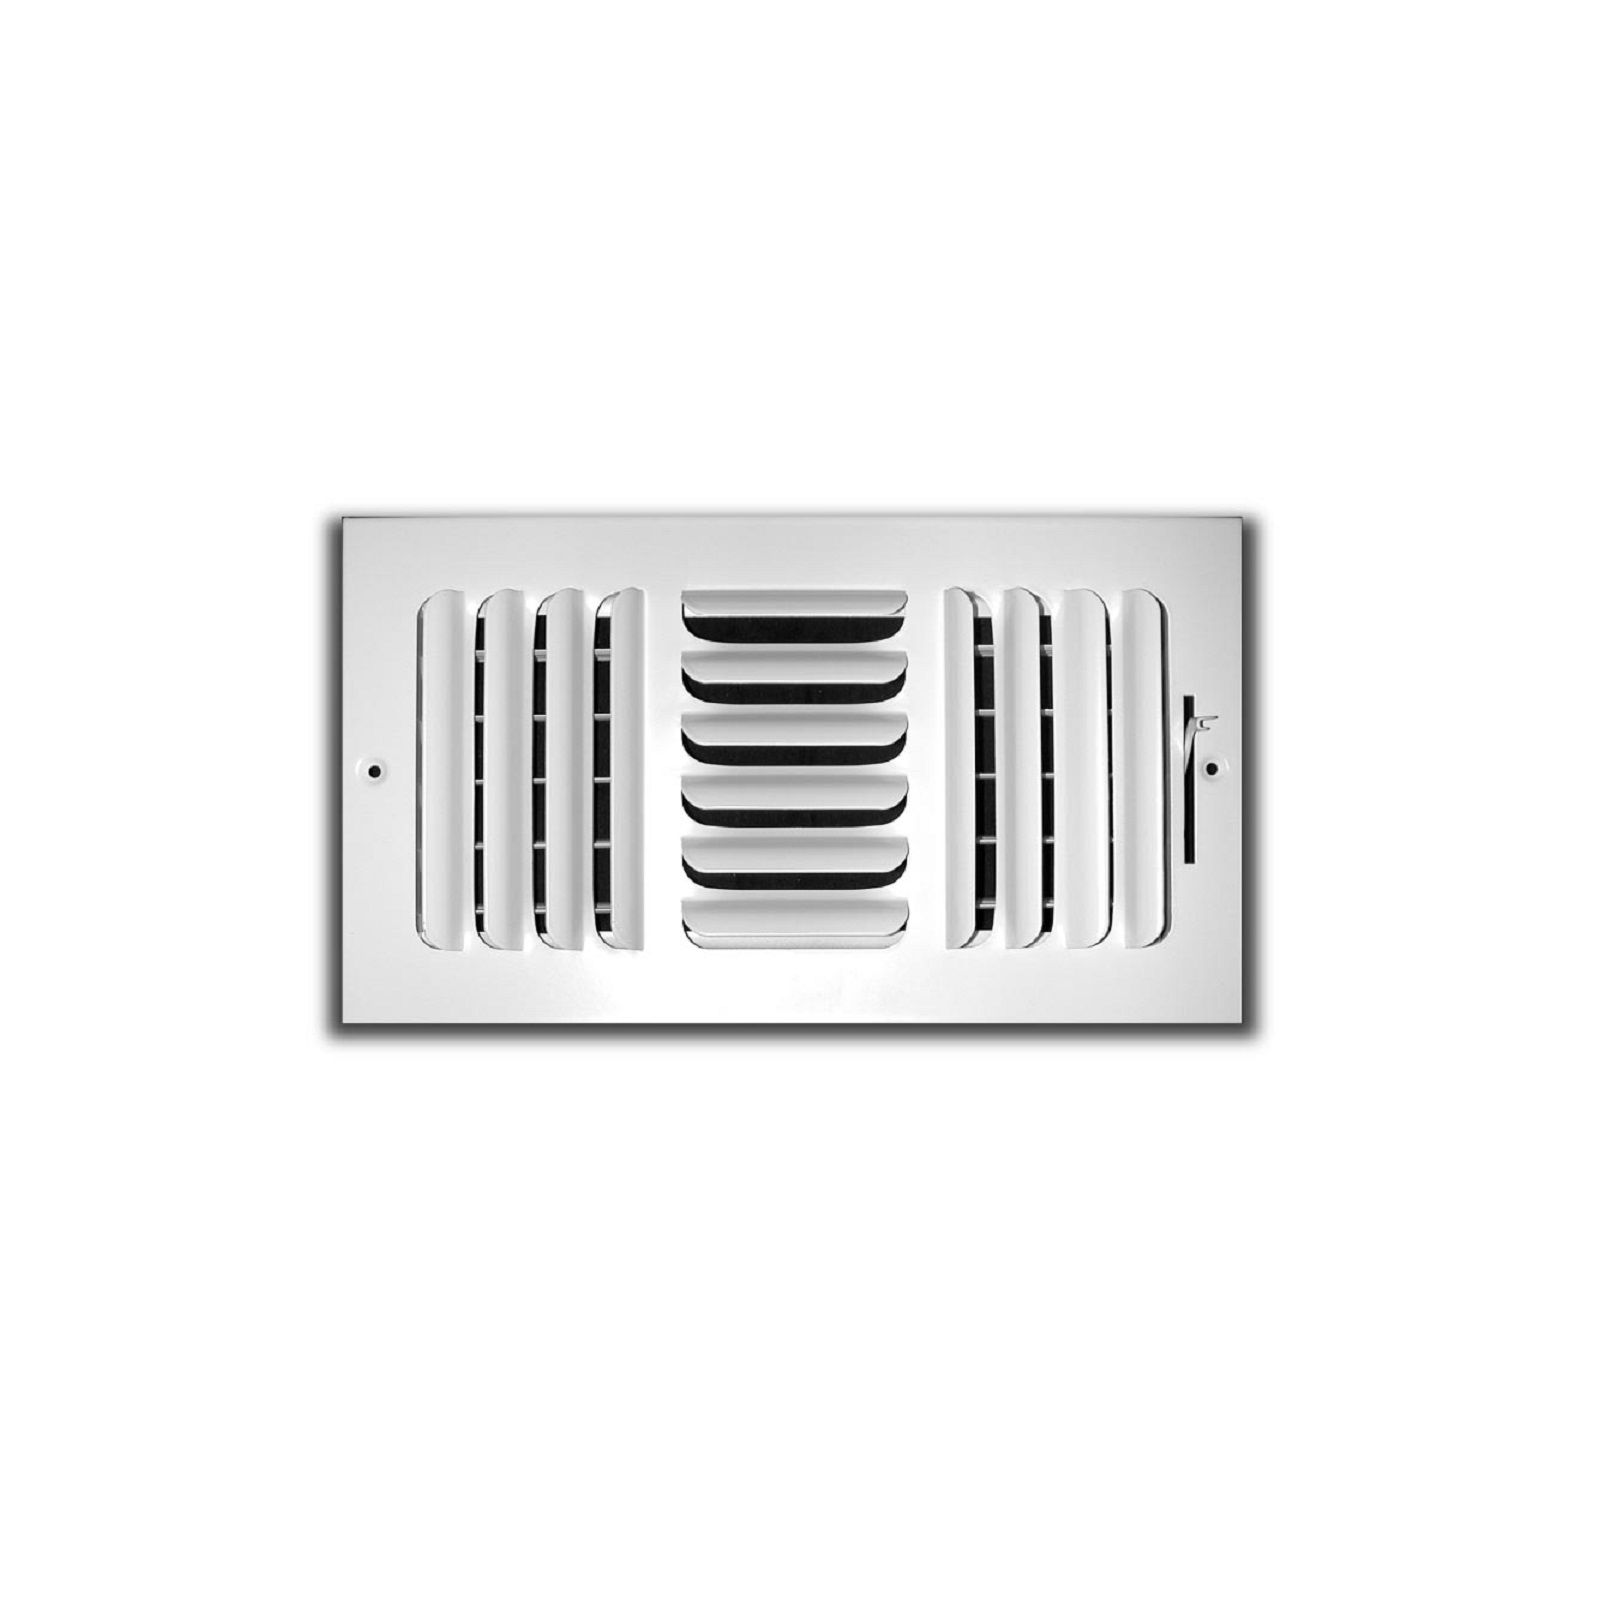 "TRUaire 403M 12X12 - Fixed Curved Blade Wall/Ceiling Register With Multi Shutter Damper, 3-Way, White, 12"" X 12"""